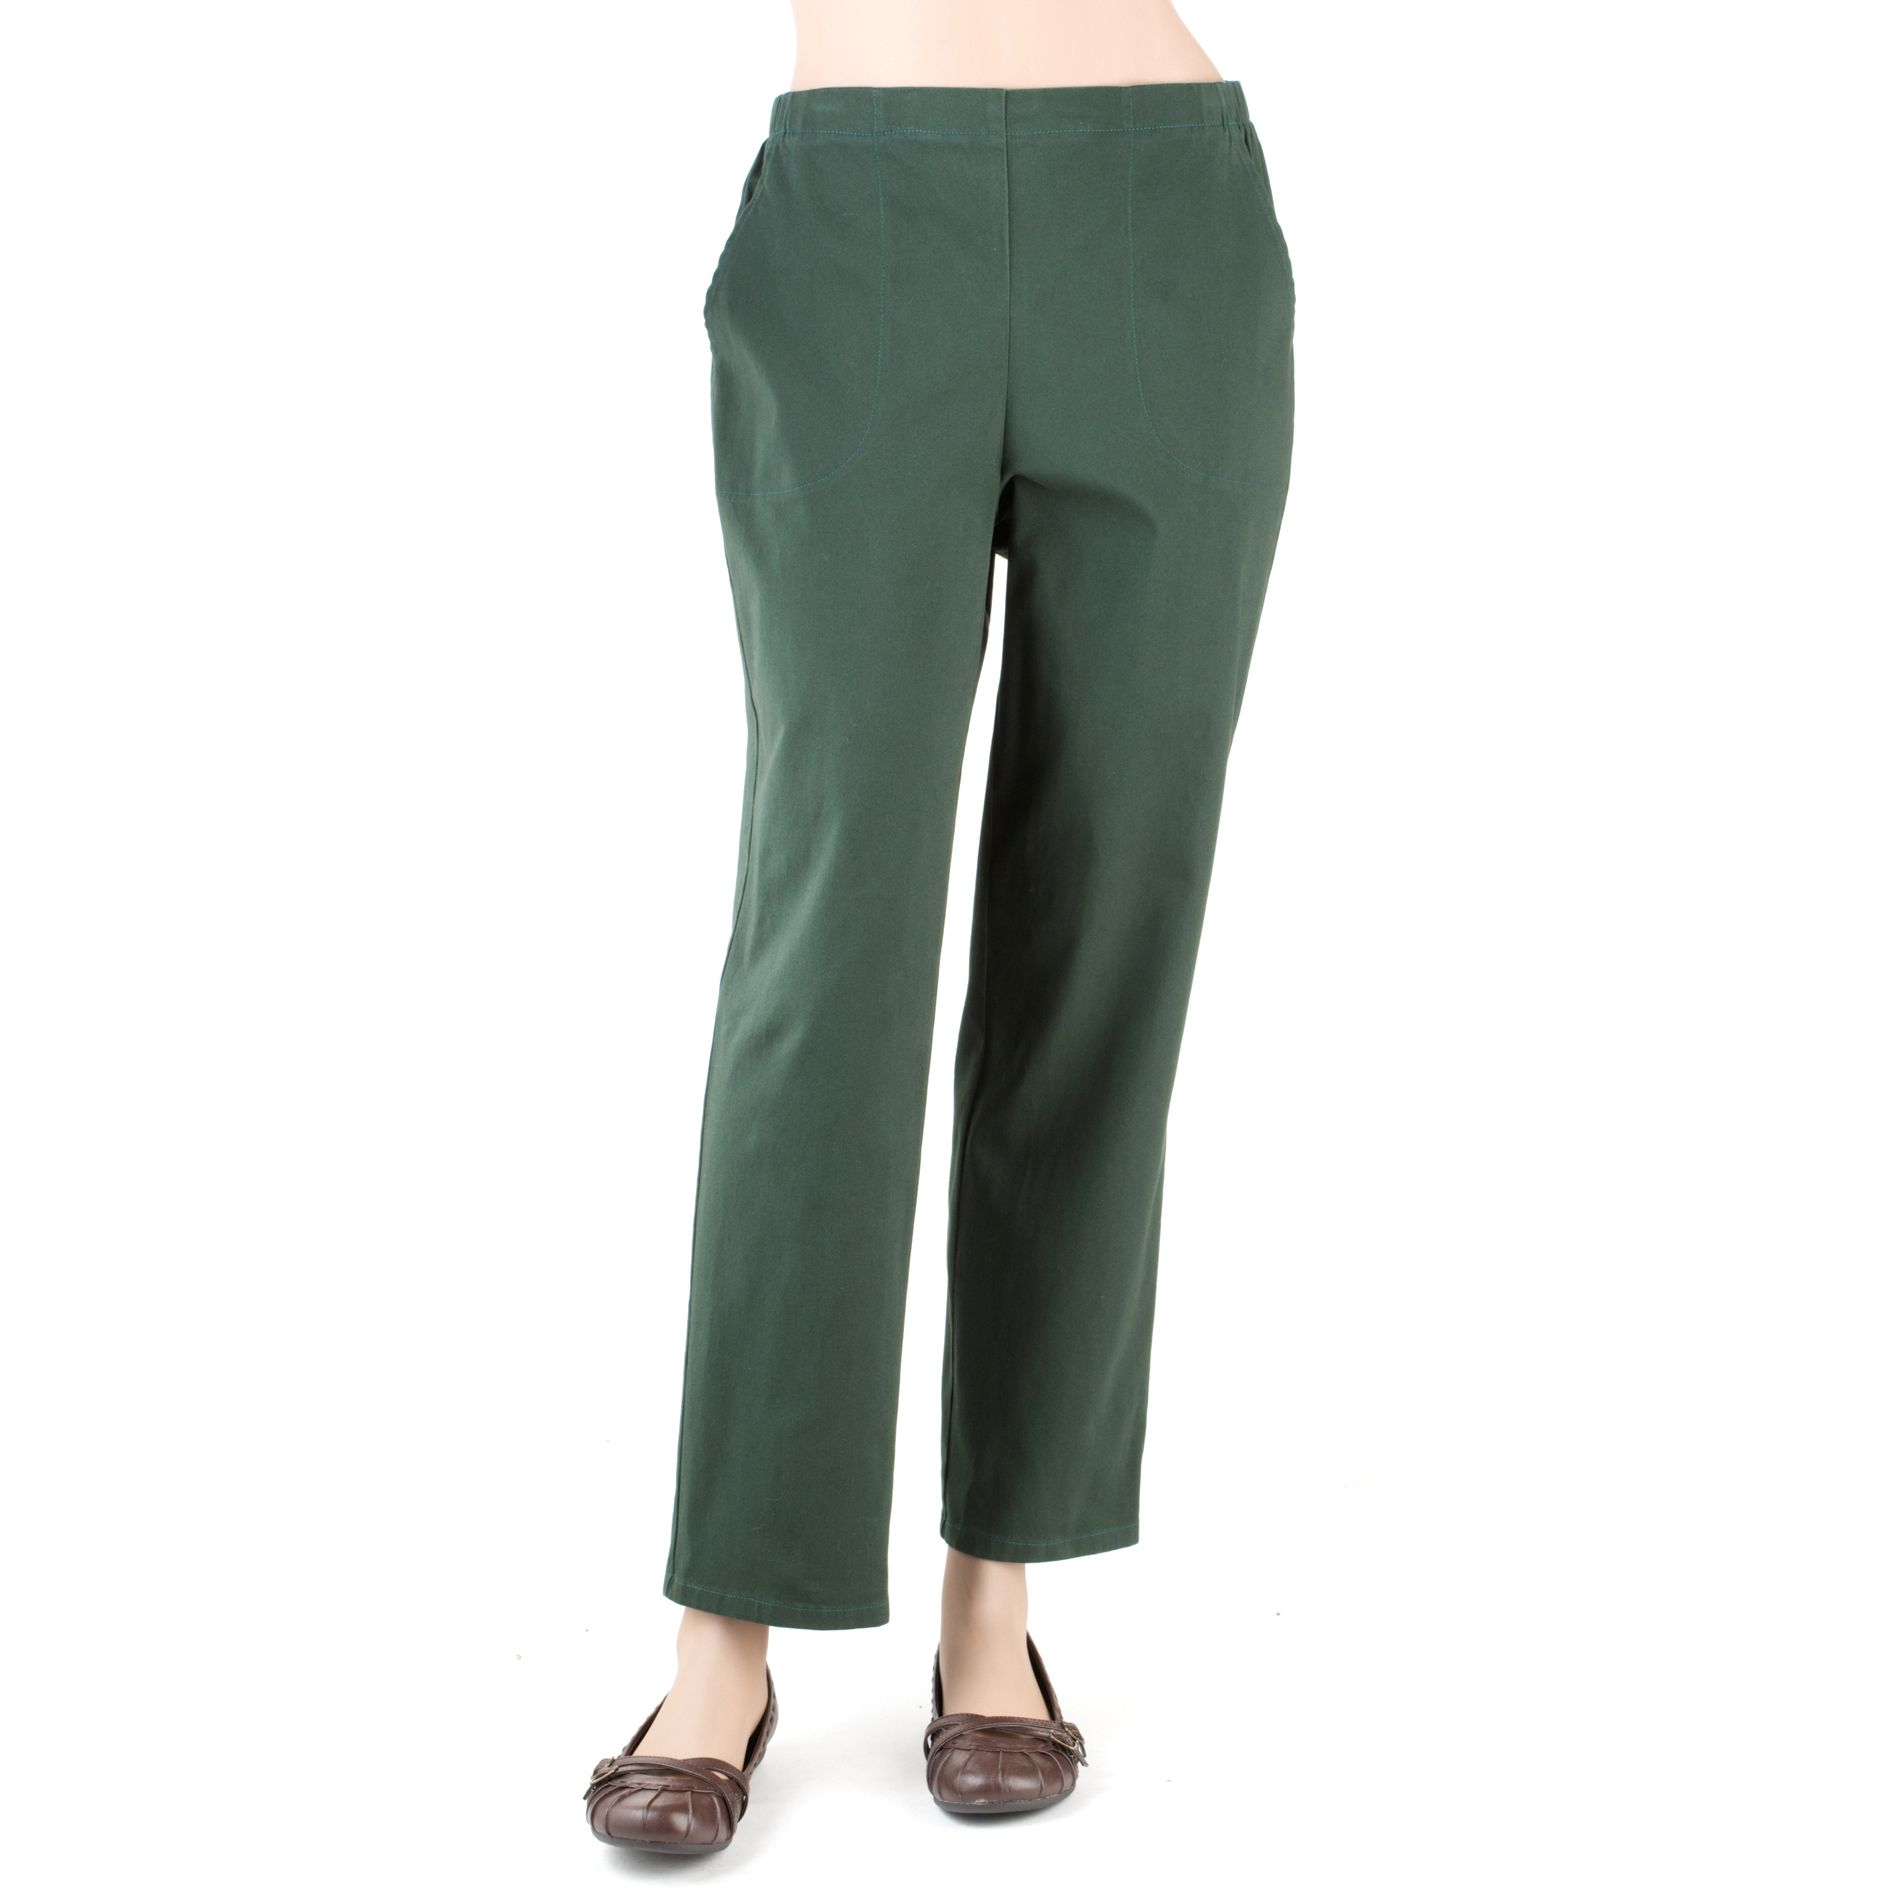 Kayo  Women's Tapered Leg Pant - Petite